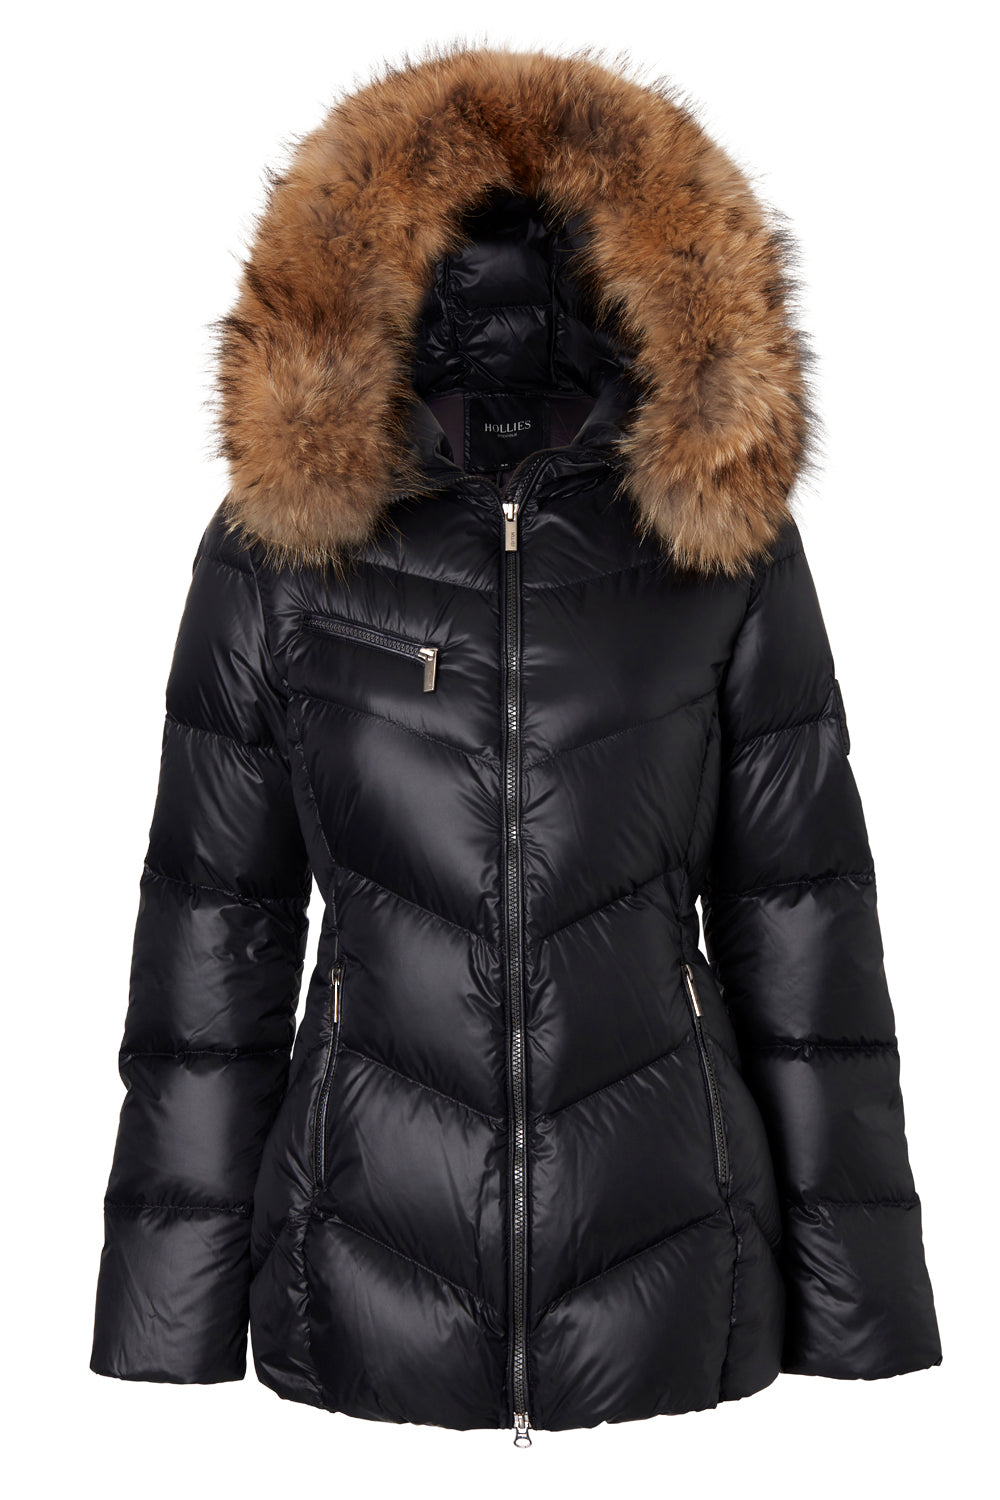 DOWN JACKETS — Hollies.se